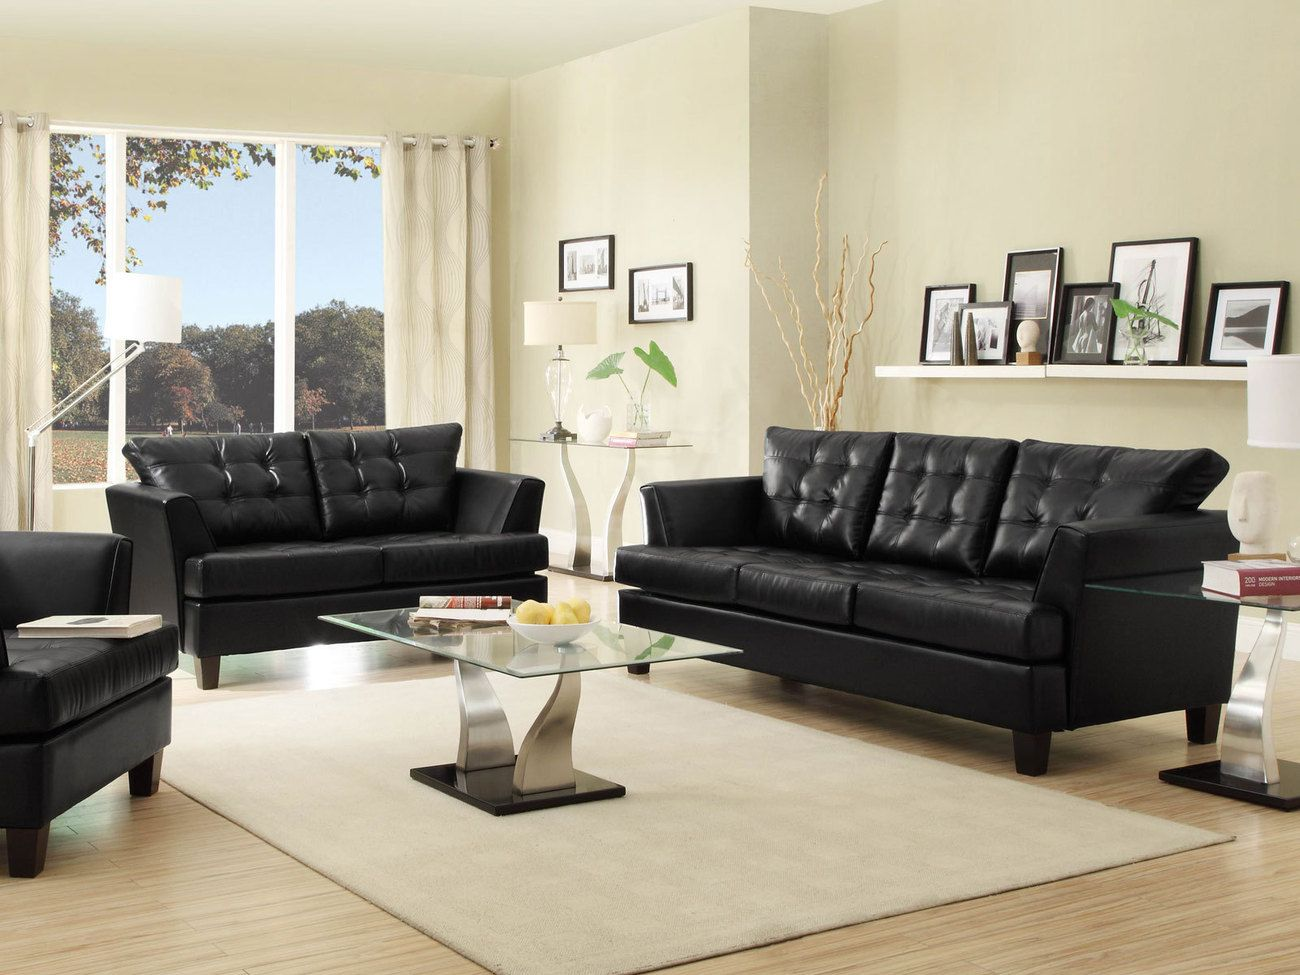 Best Iris Modern Black Faux Leather Sofa Couch Loveseat Set 400 x 300